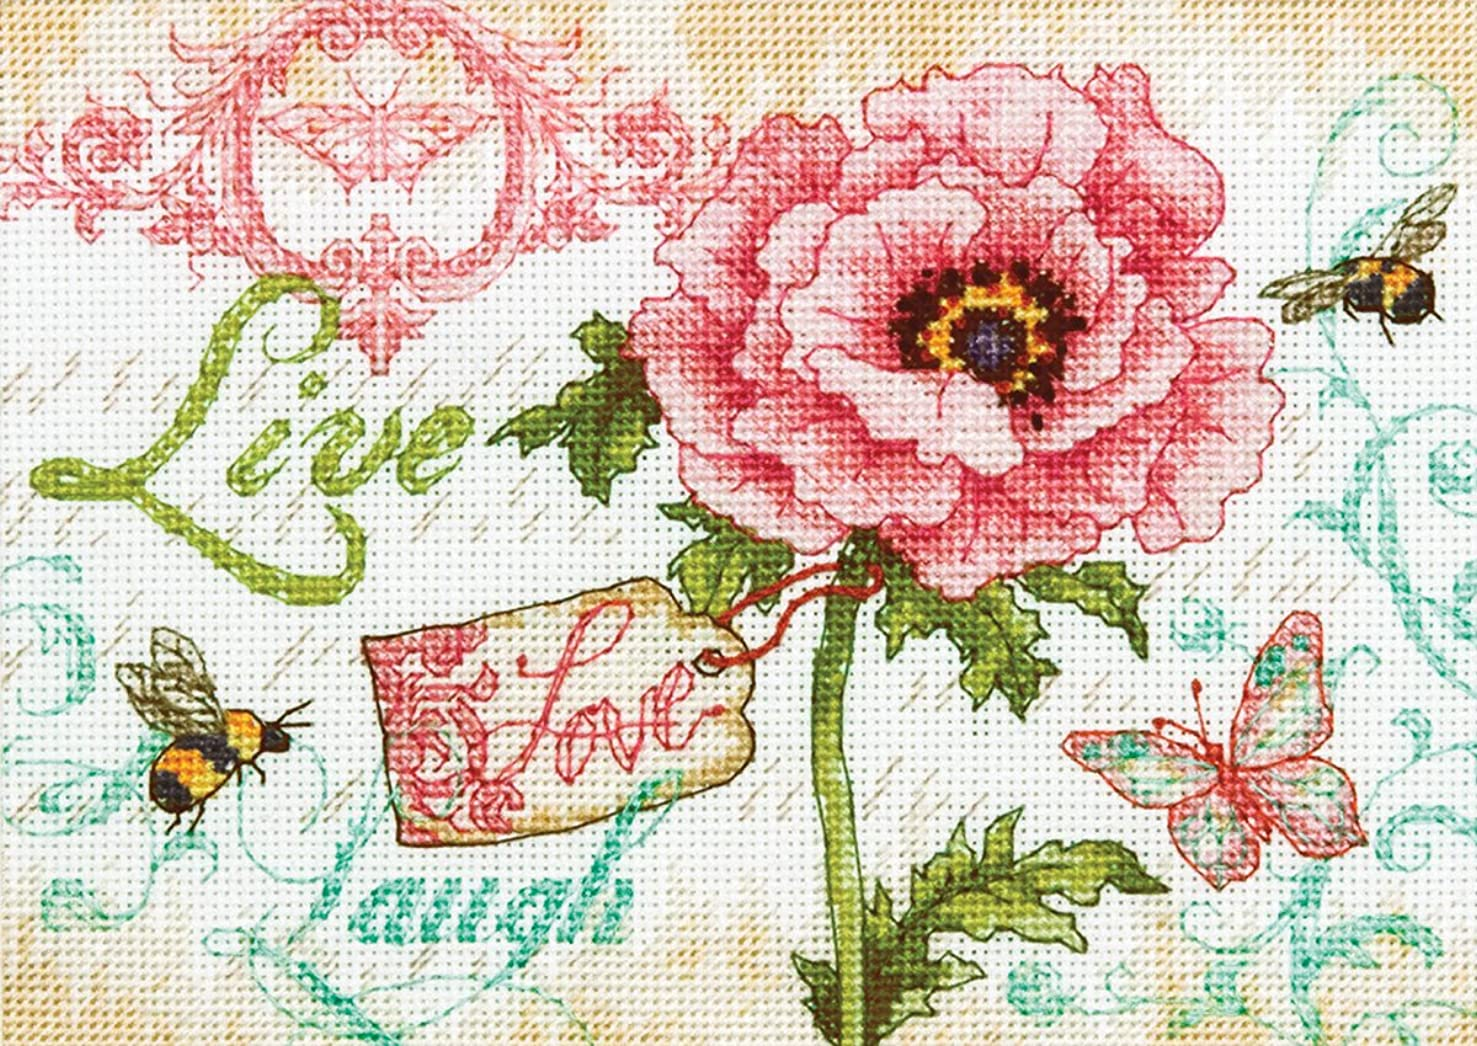 Dimensions Needlecrafts Counted Cross Stitch by Kathryn White, Live, Love and Laugh